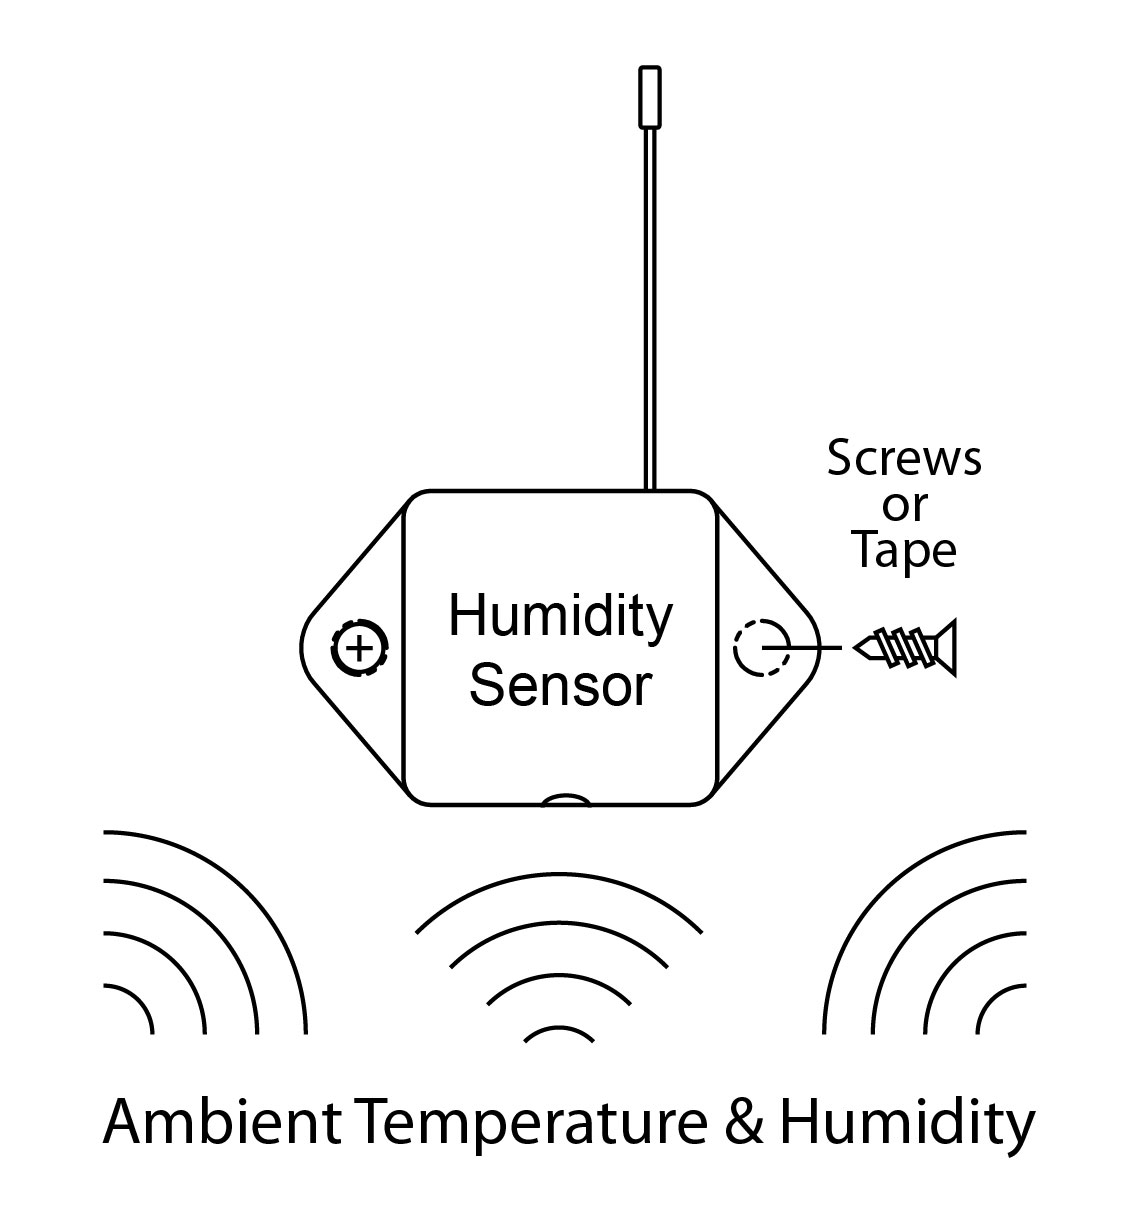 Place and mount wireless humidity sensor